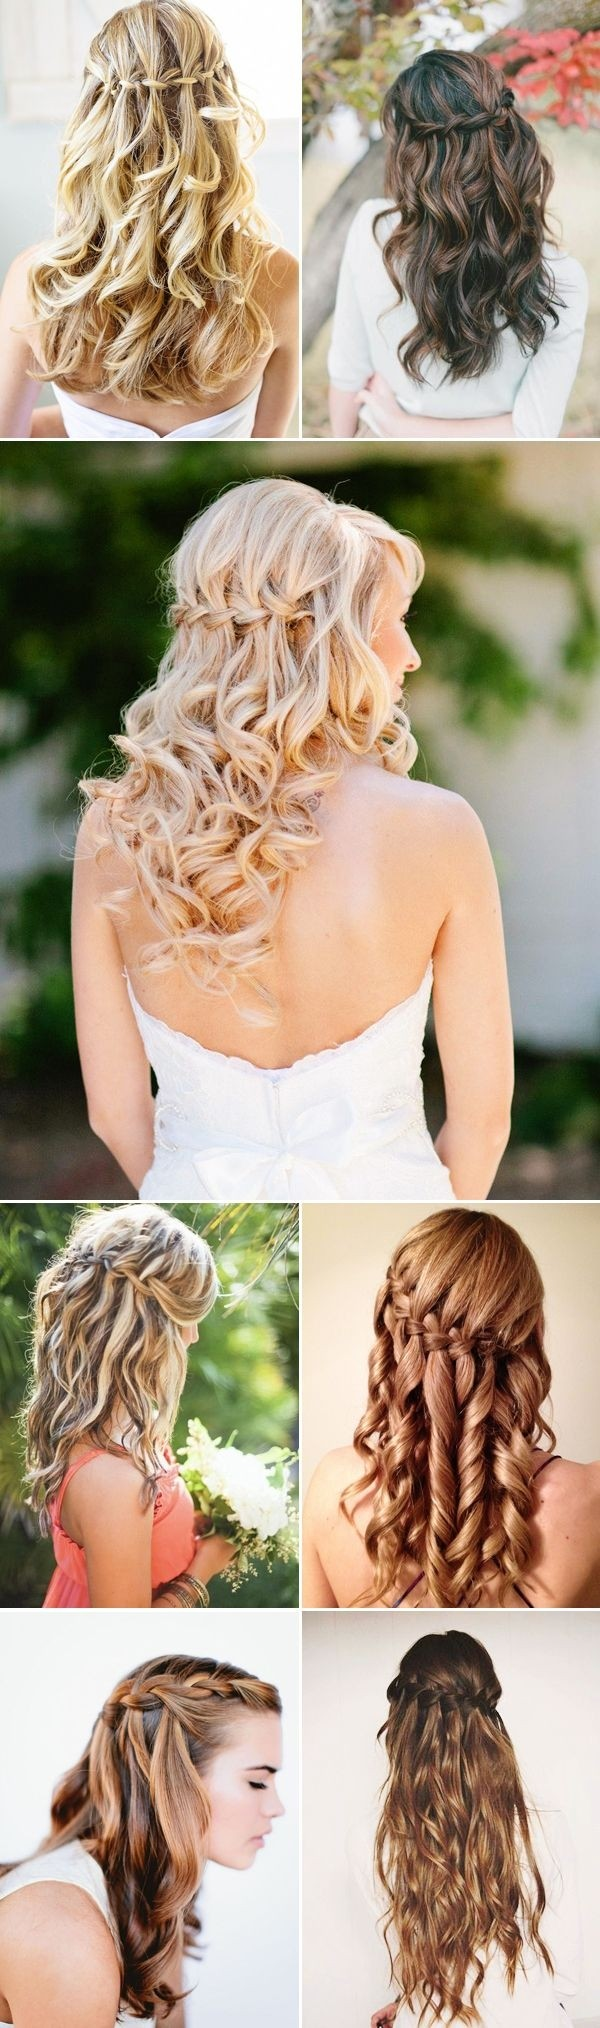 30 hottest bridesmaid hairstyles for long hair - popular